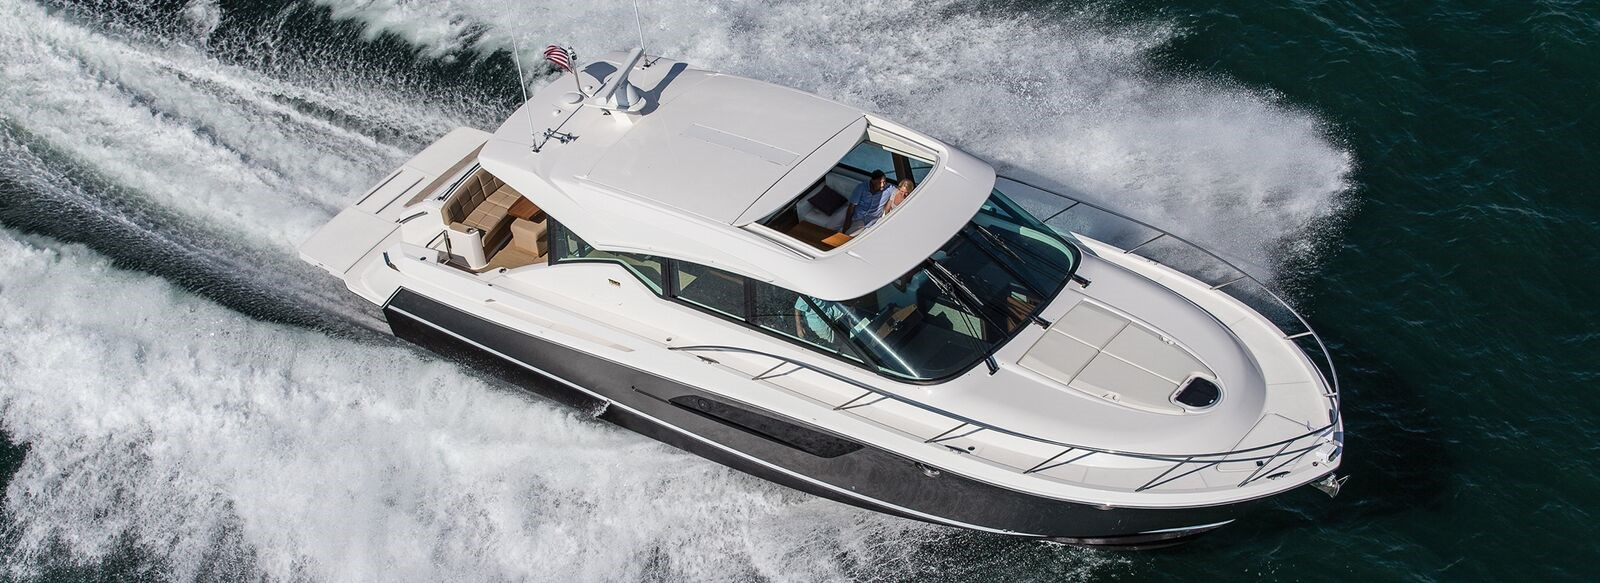 New Tiara 53 Coupe Yachts For Sale